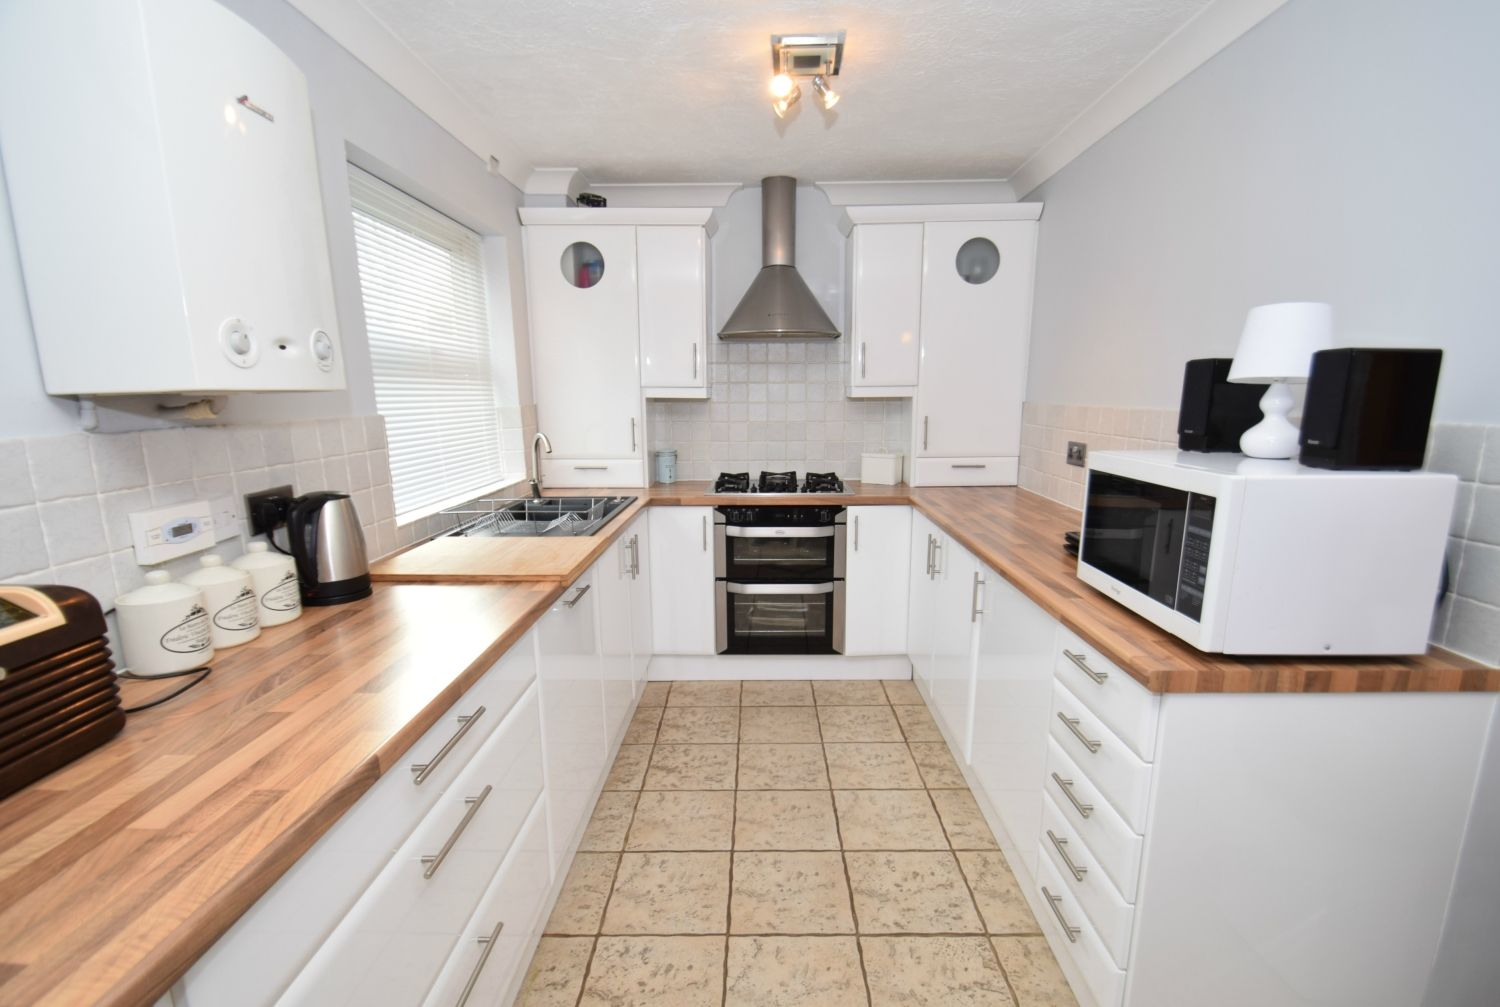 3 bed detached for sale in Foxes Close, Blackwell, B60  - Property Image 2